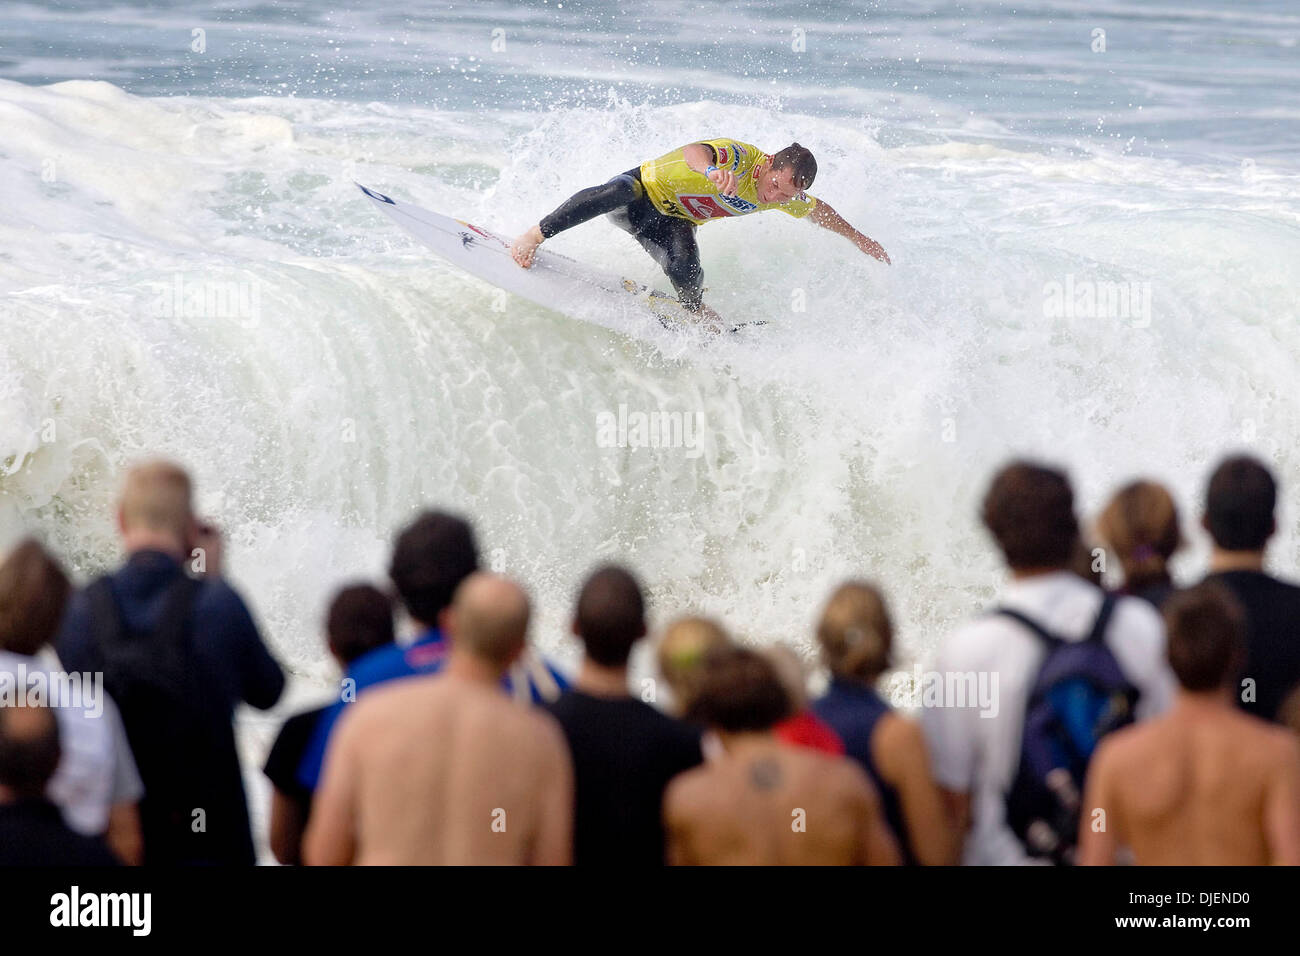 Sep 21, 2007 - La Graviere, Hossegor, France - ROYDEN BRYSON (East London, South Africa) advanced straight to Round Three of the Quiksilver Pro after winning his opening encounter at La Graviere. Bryson posted the 5th highest single wave score of 9.43 (out of a possible 10) for the day to take the heat win from Shaun Cansdell (Aus) and Chris Ward (USA). (Credit Image: © Kelly Cesta - Stock Image